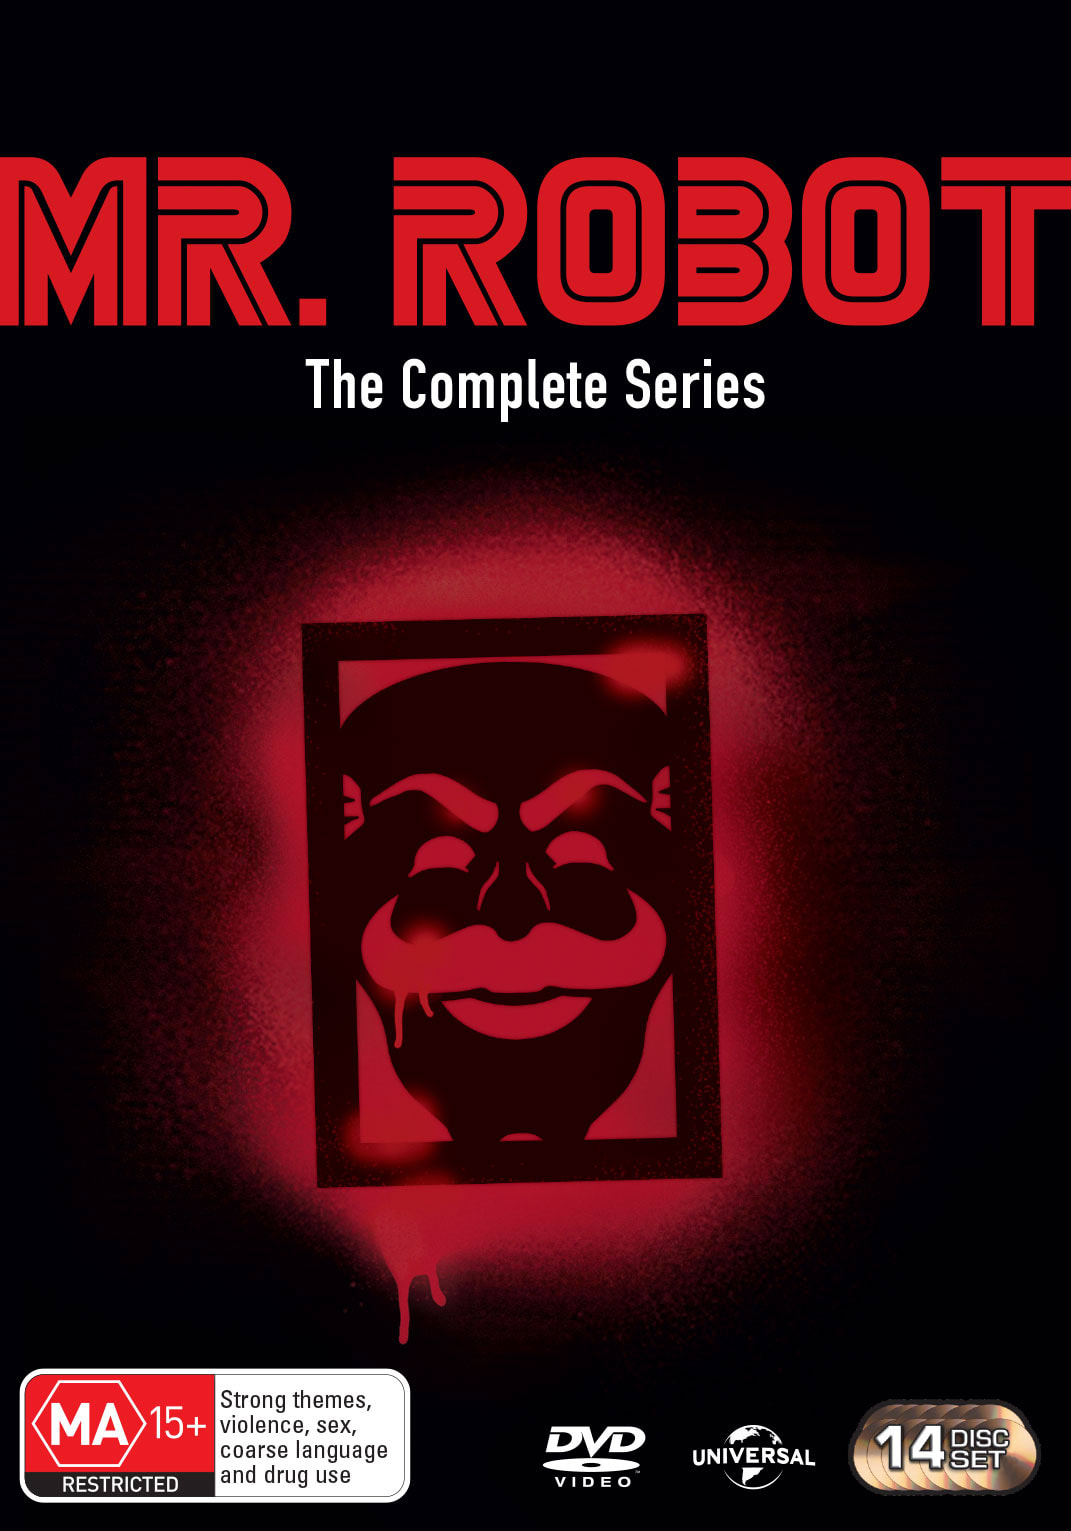 Mr. Robot: Season_1.0-4.0 (Box Set) [DVD]